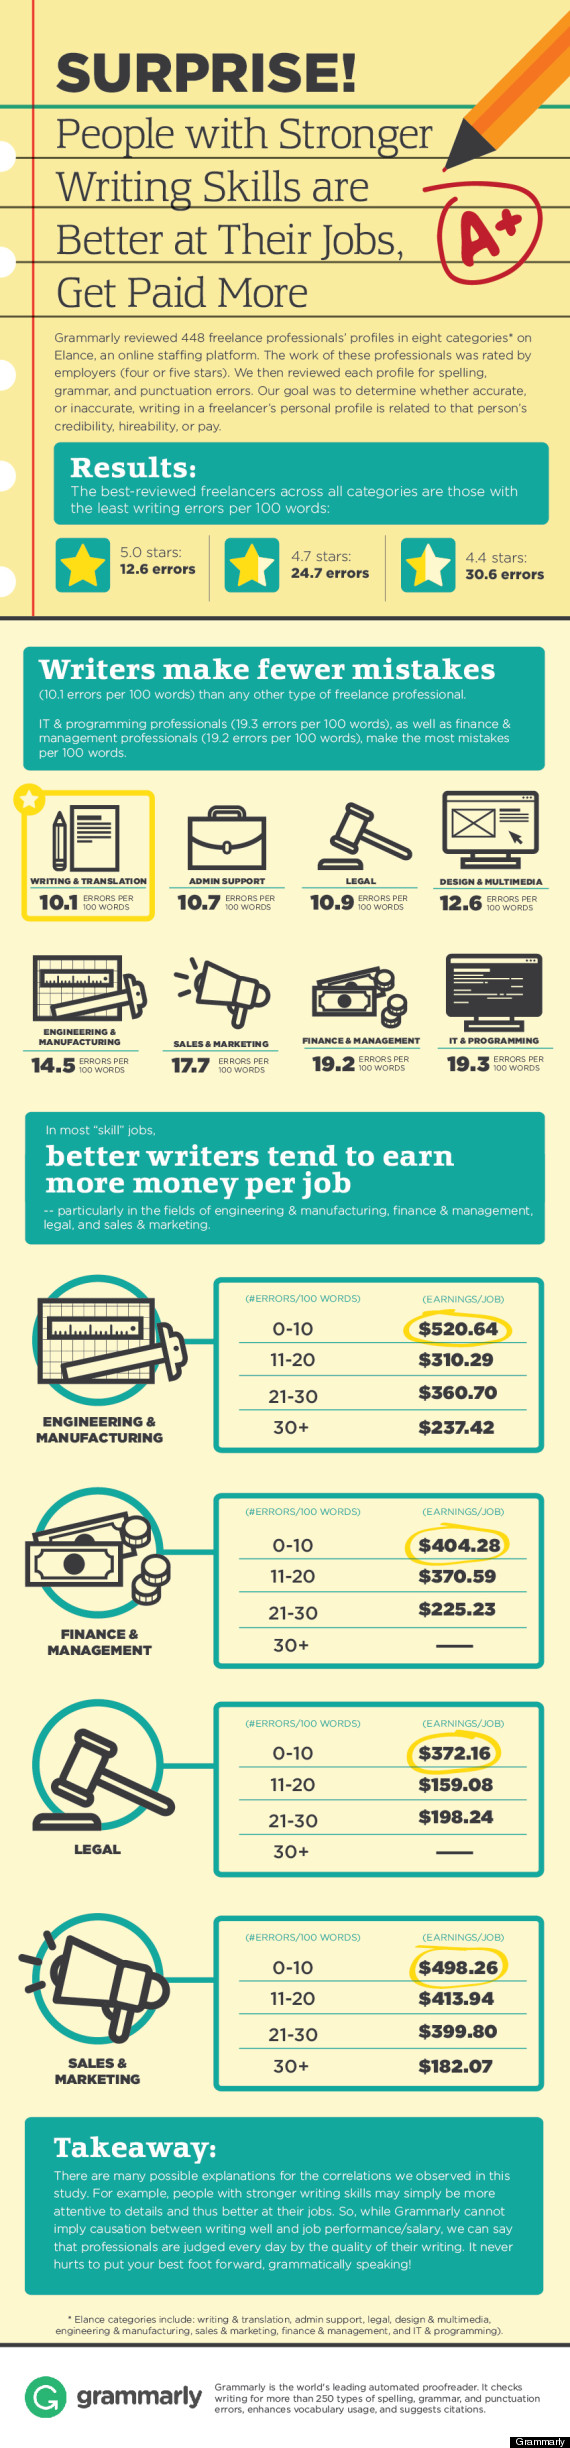 grammar infographic shows why writing skills matter huffpost grammar infographic